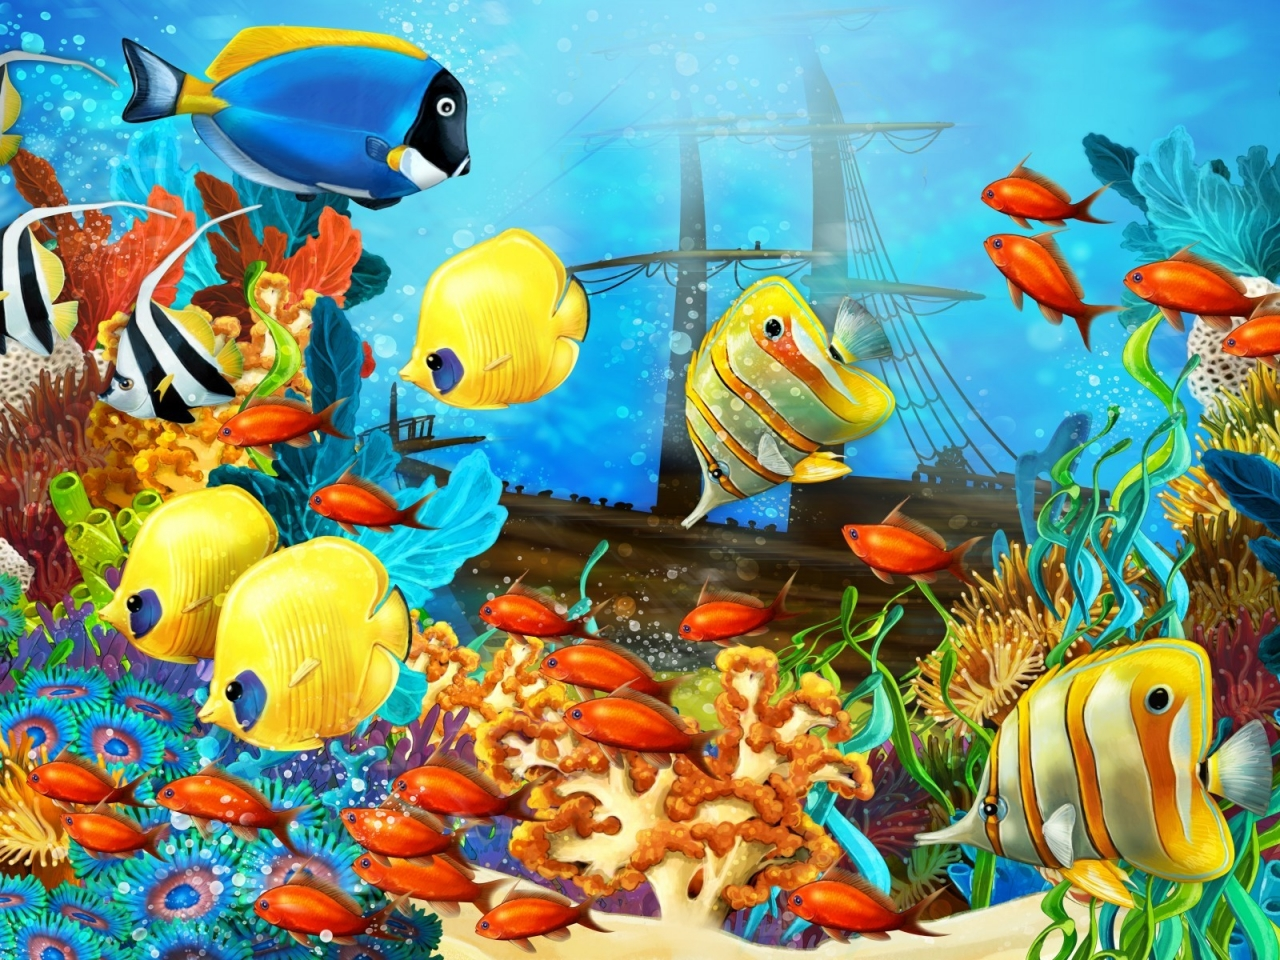 Fish World Painting for 1280 x 960 resolution